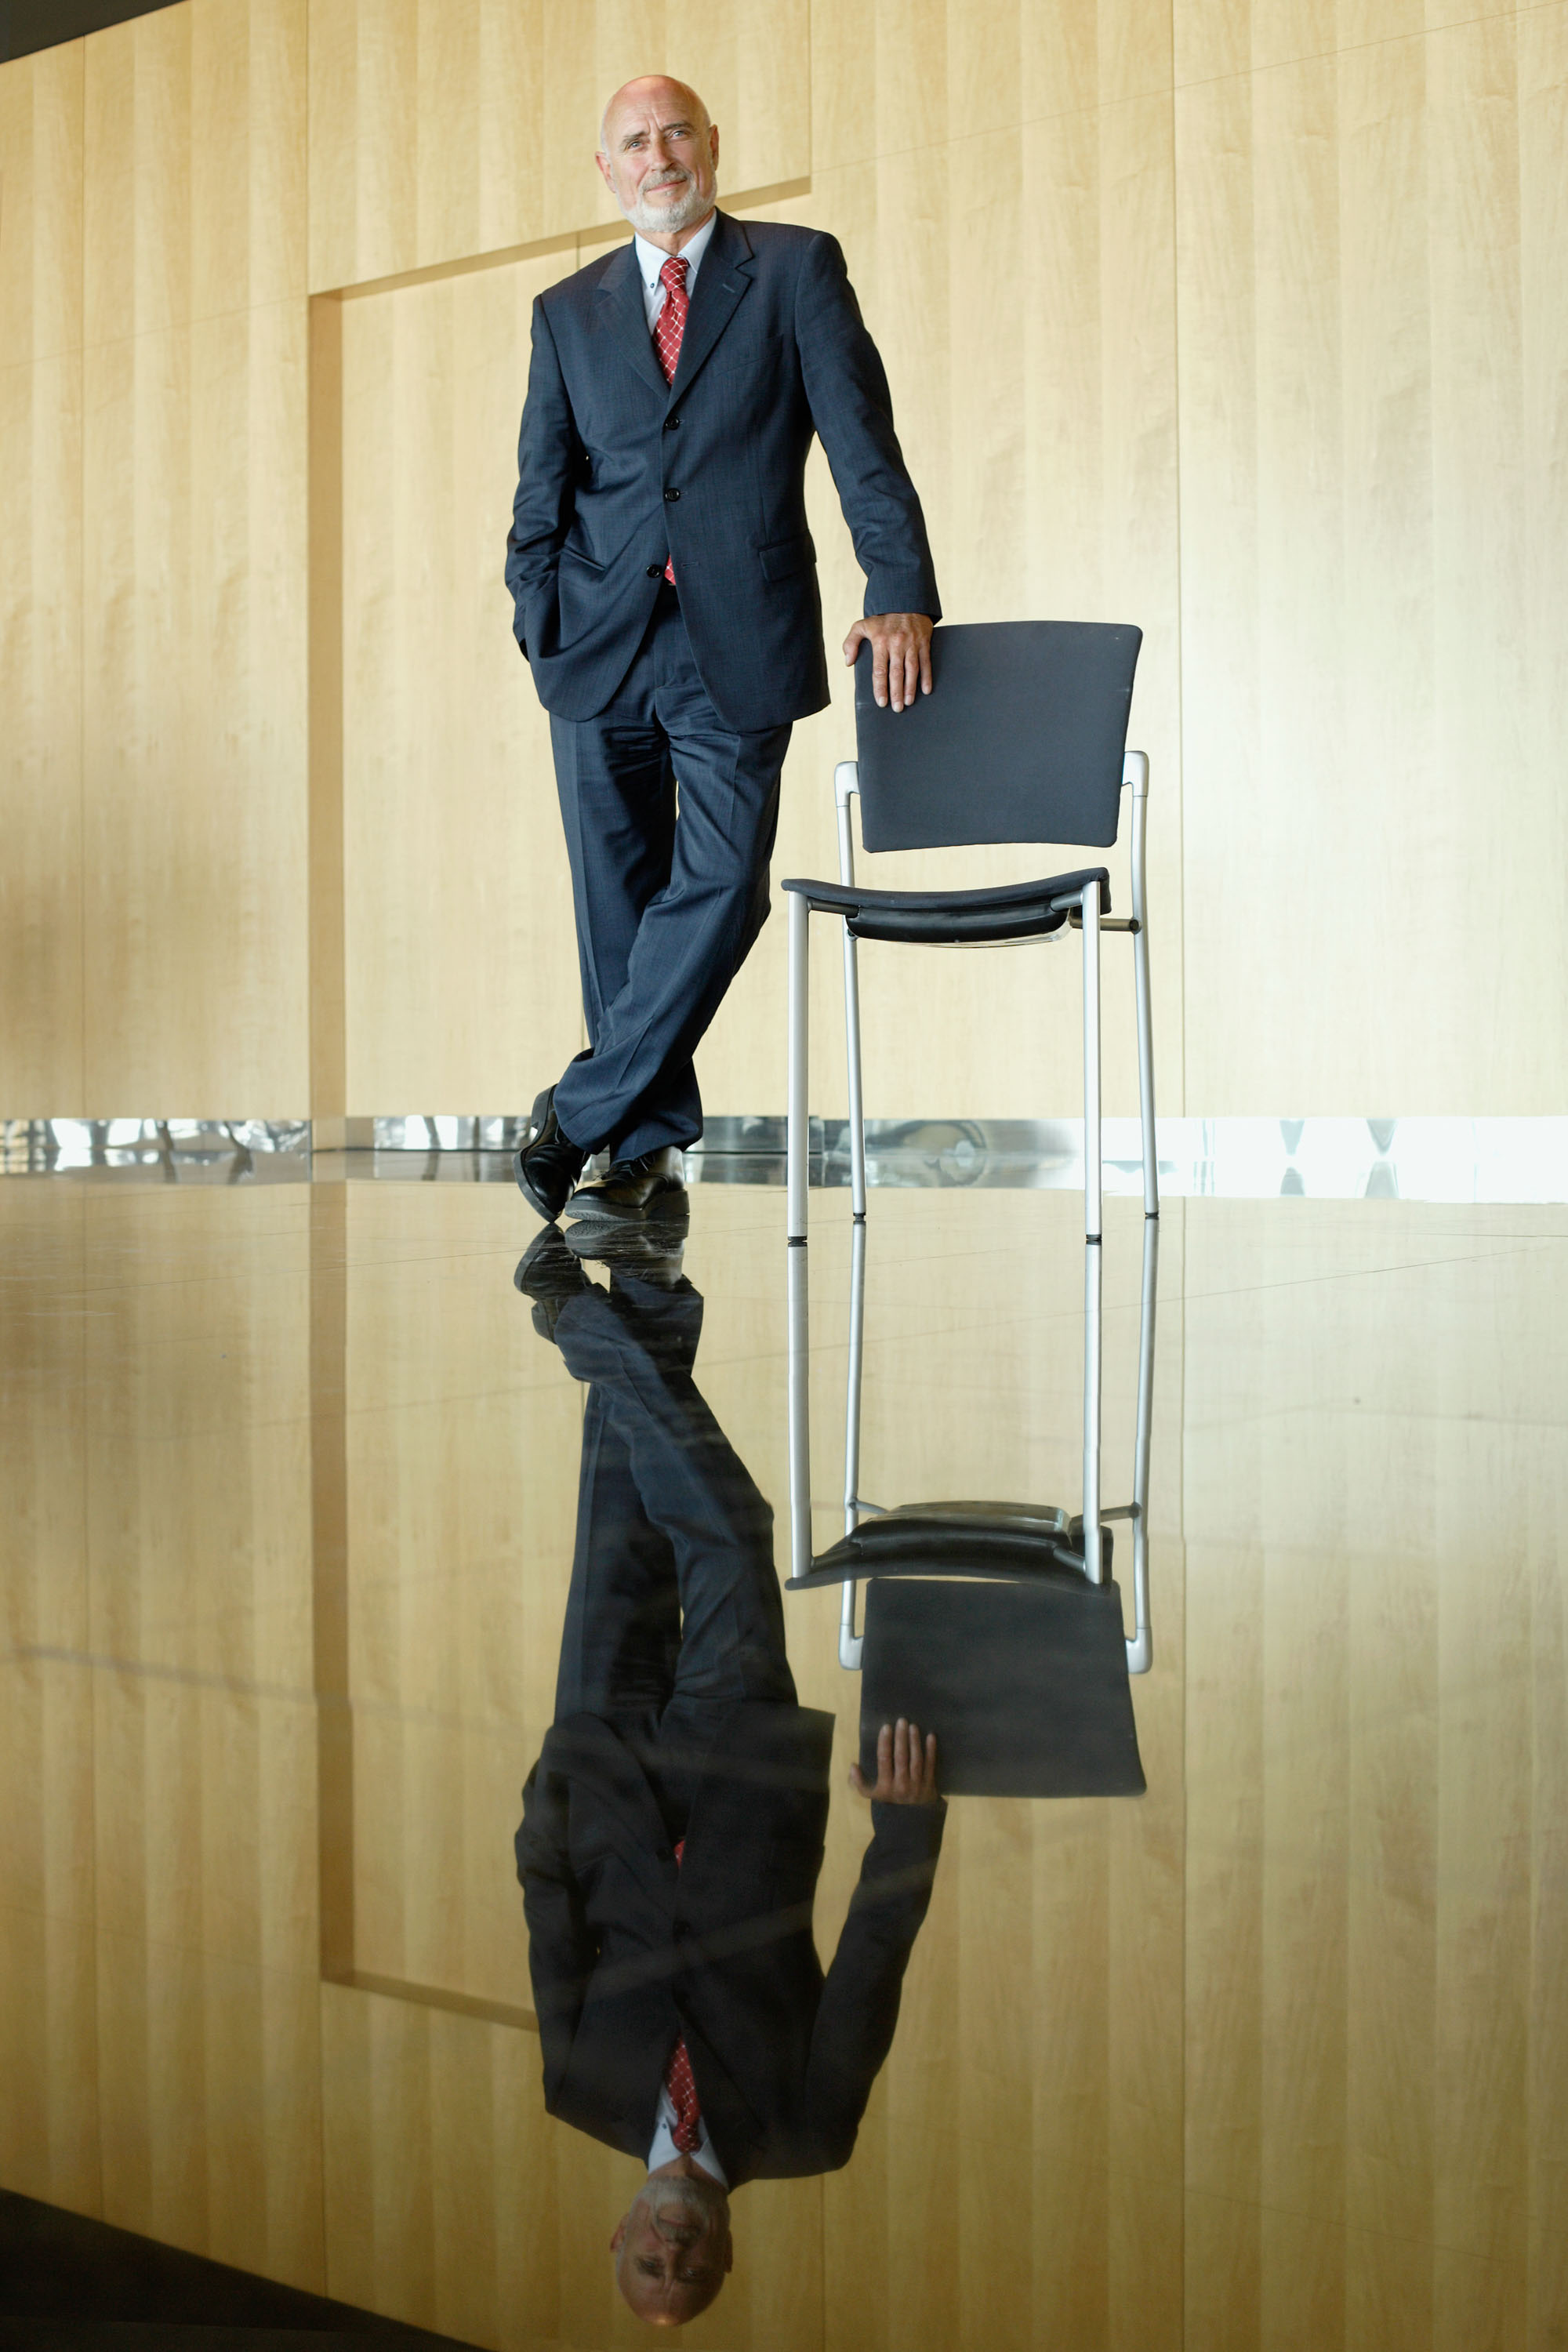 bussines man standing, with reflex on the floor